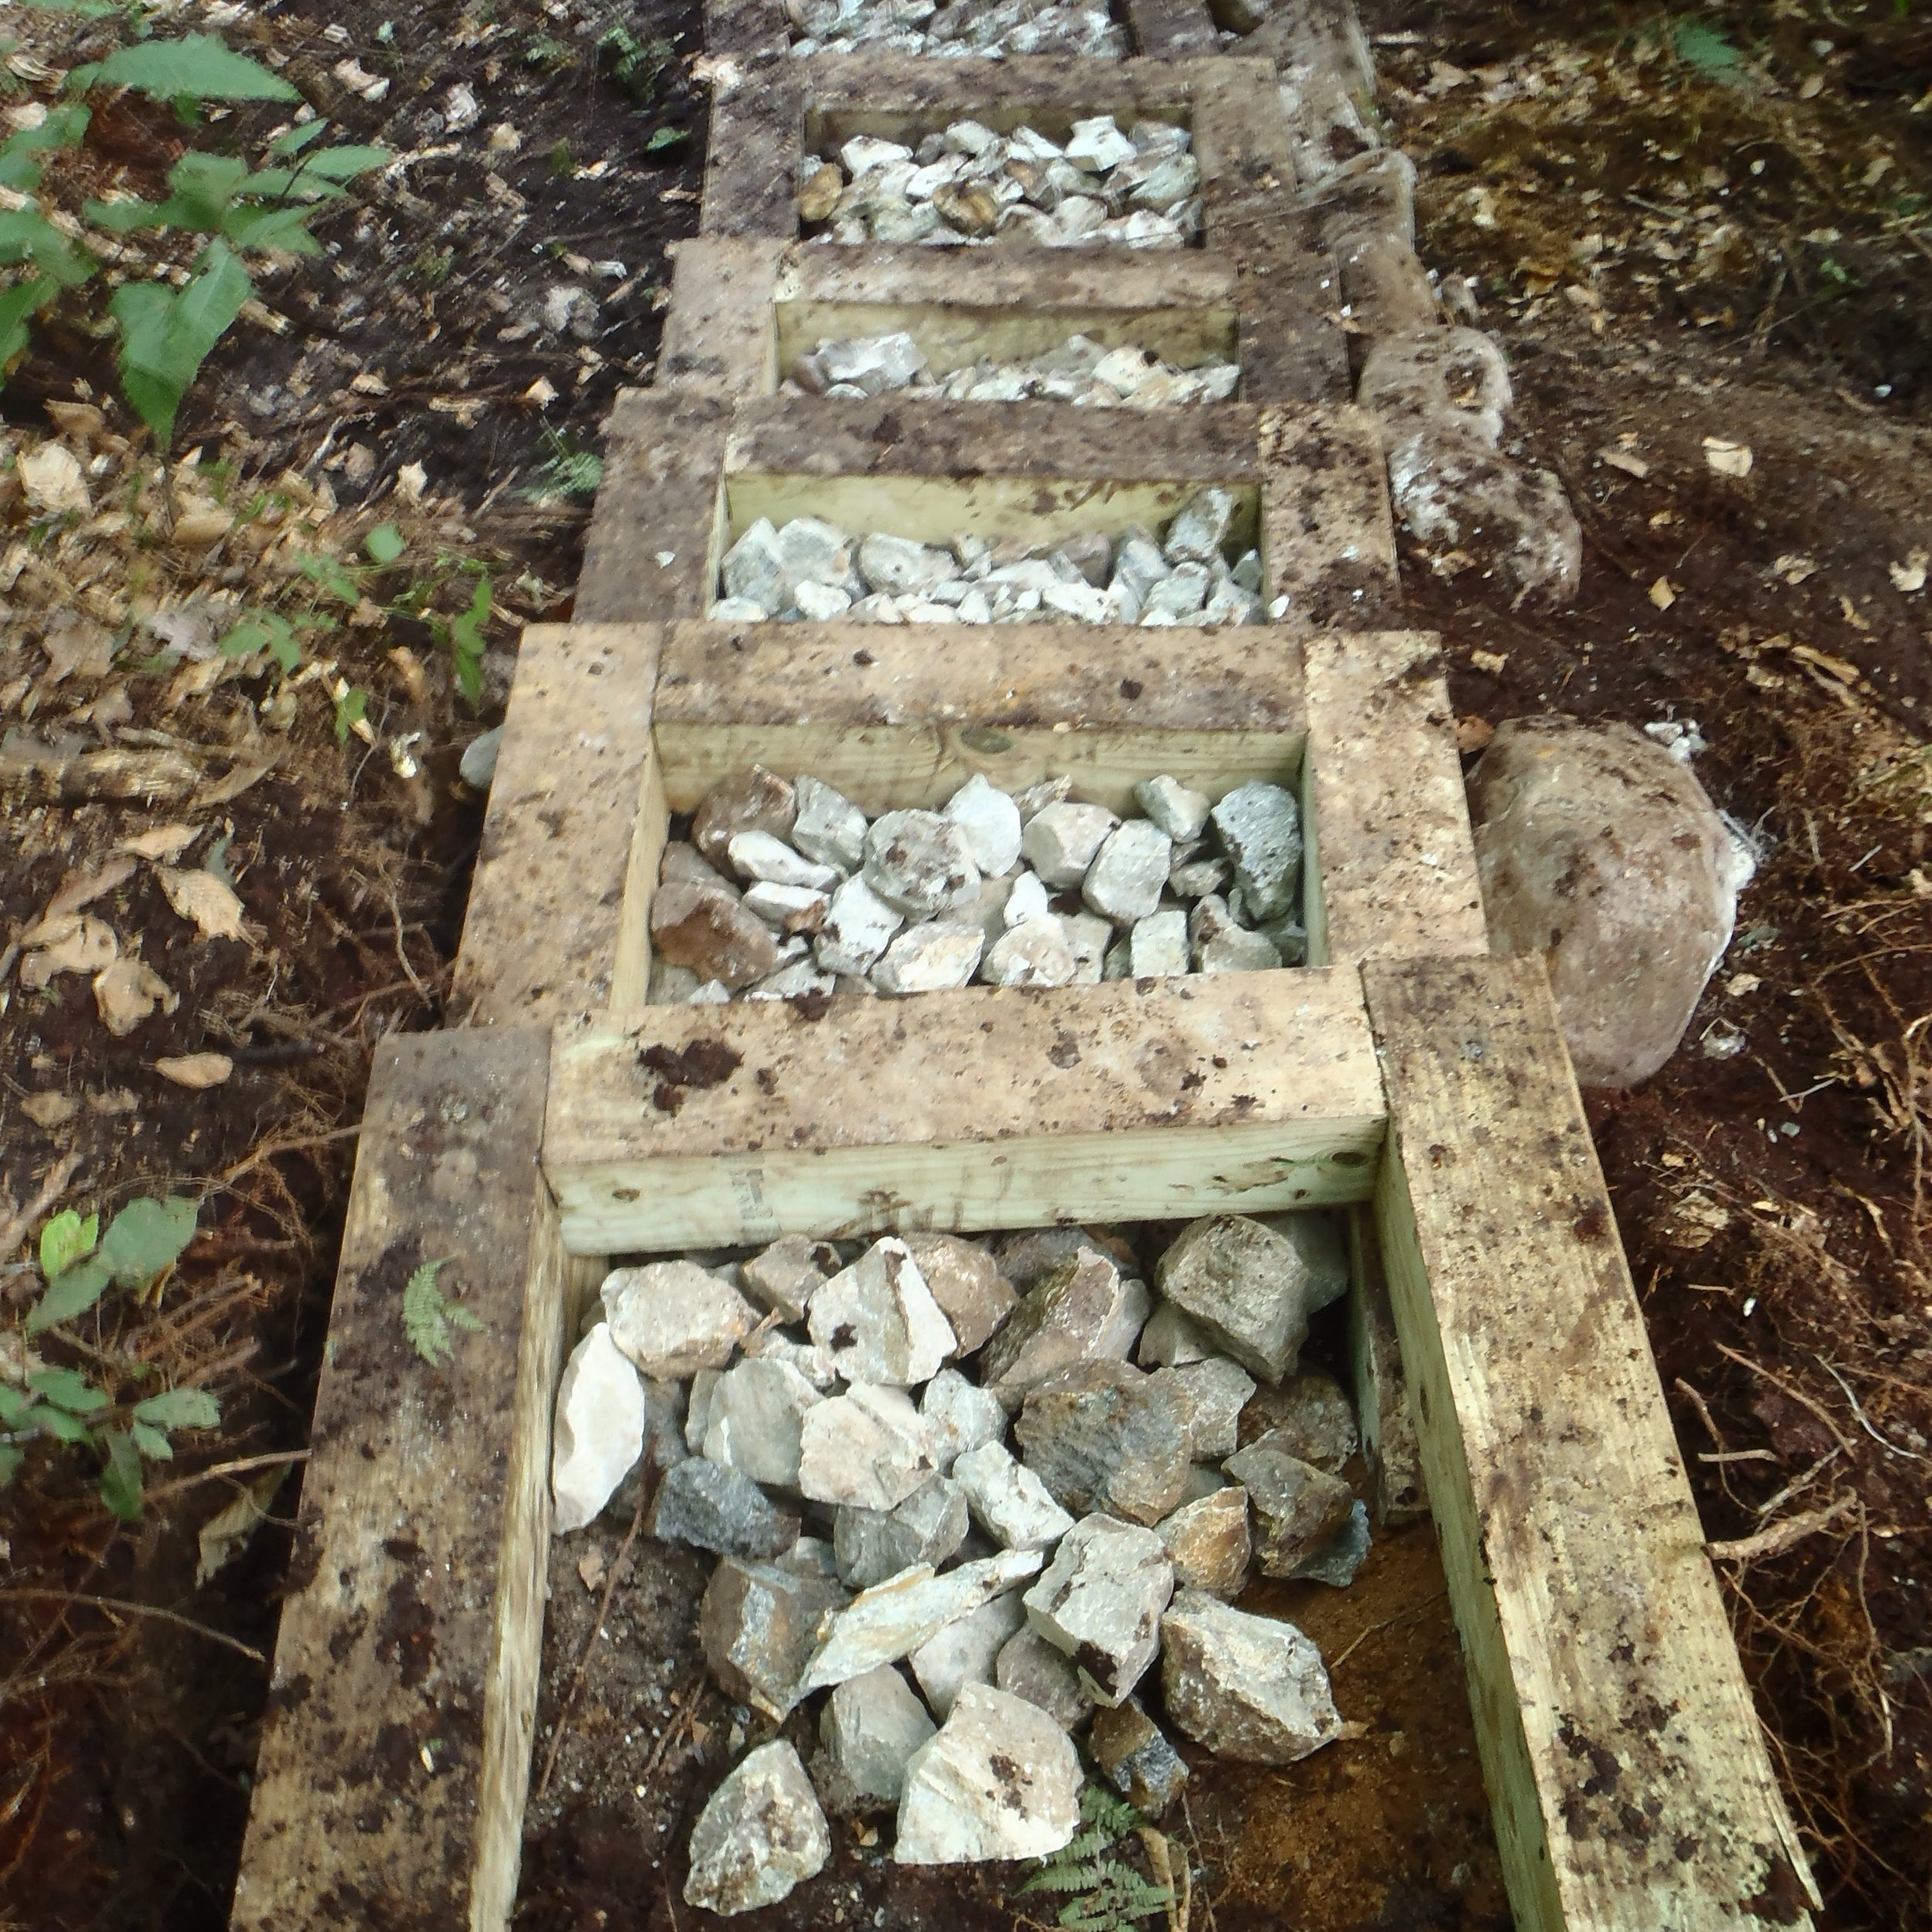 Wooden box steps in progress on the Forrest City Trail up Camel's Hump, VT.